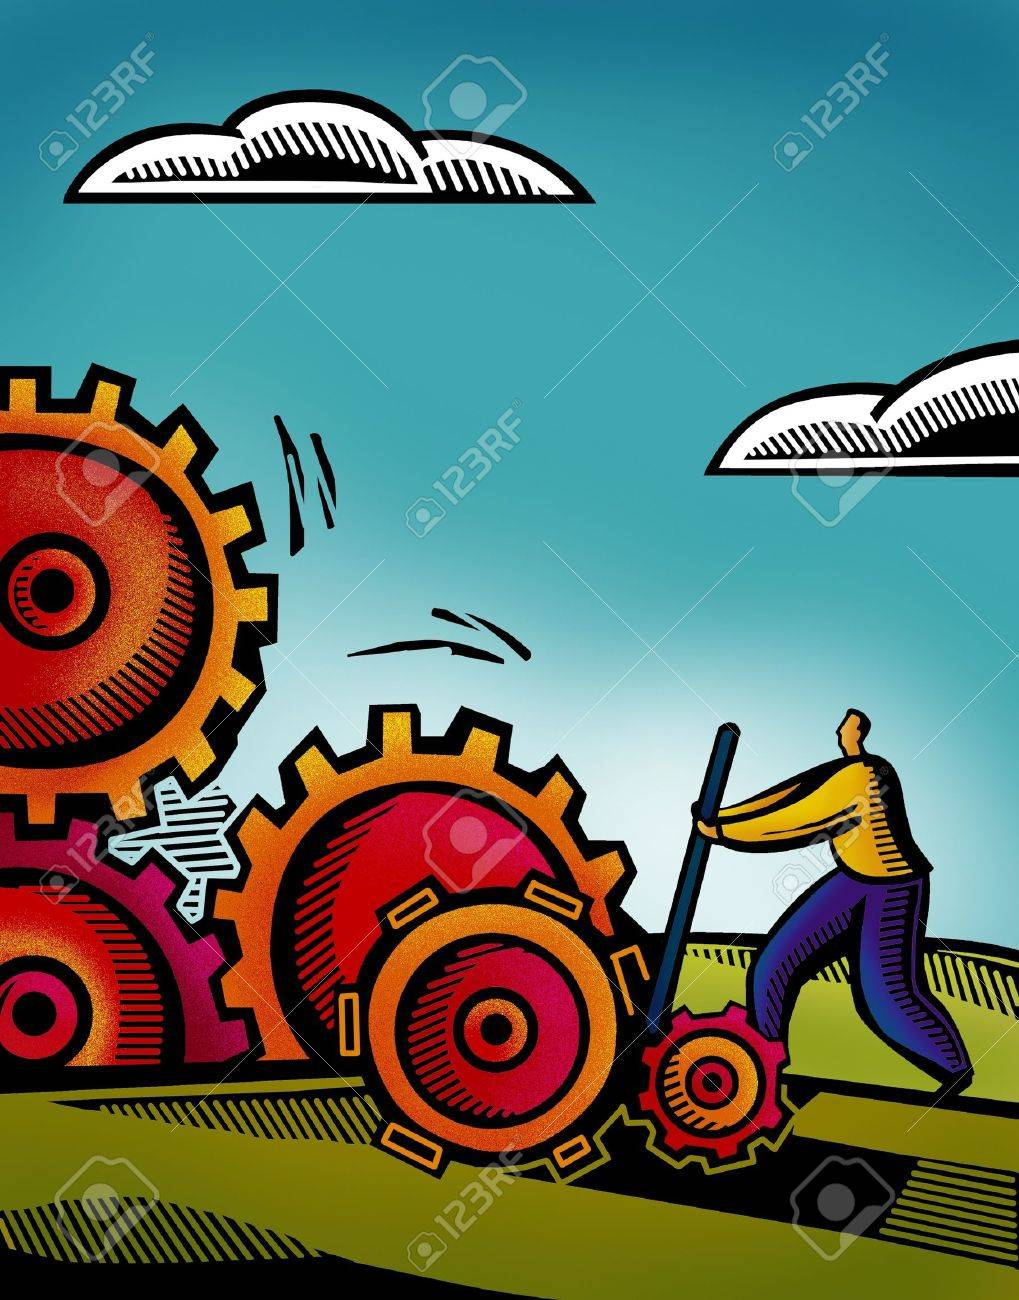 A business man working on inter connected gears Stock Photo - 14887925